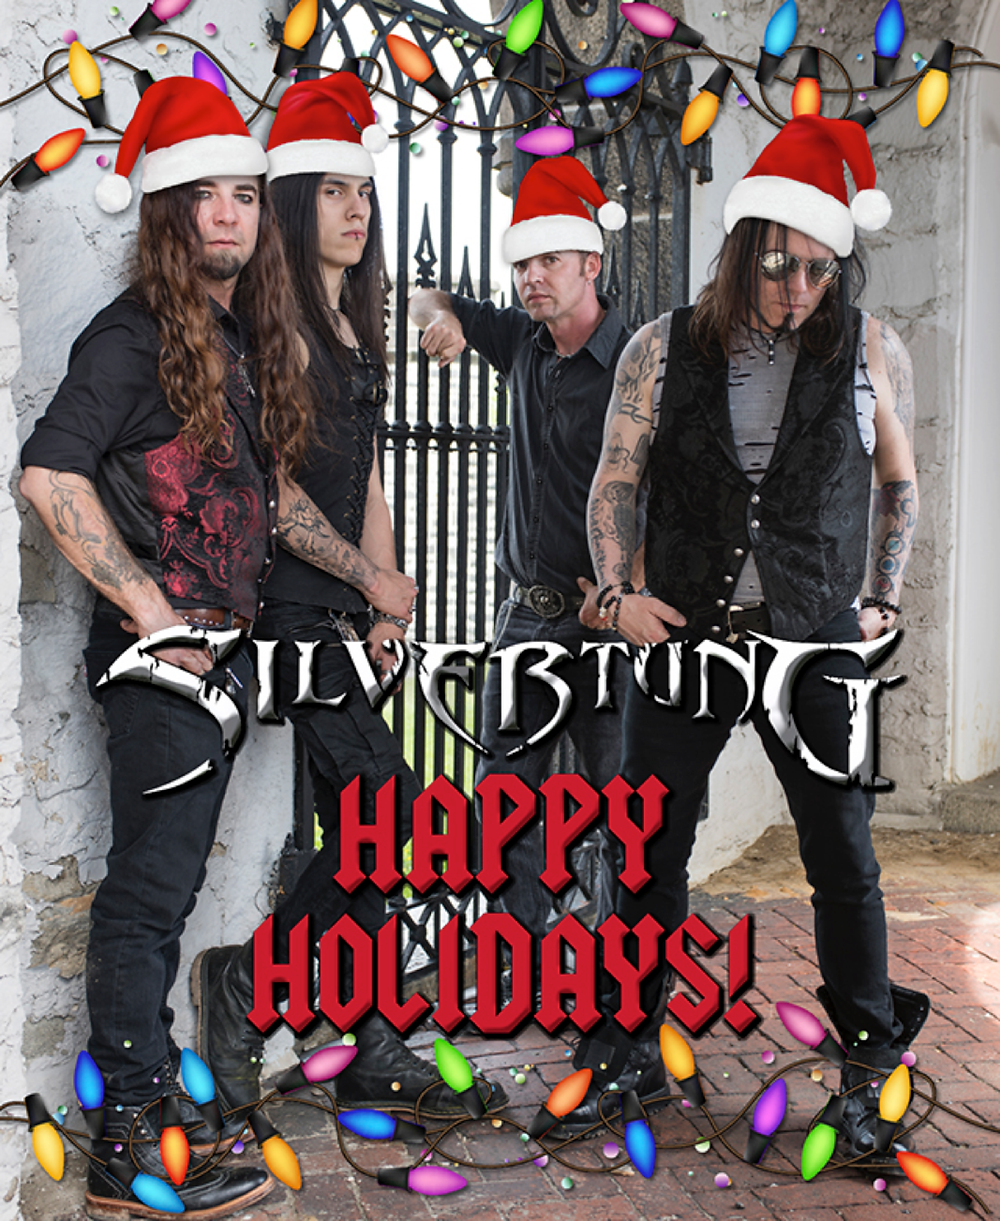 Happy Holidays, Christmas, Silvertung